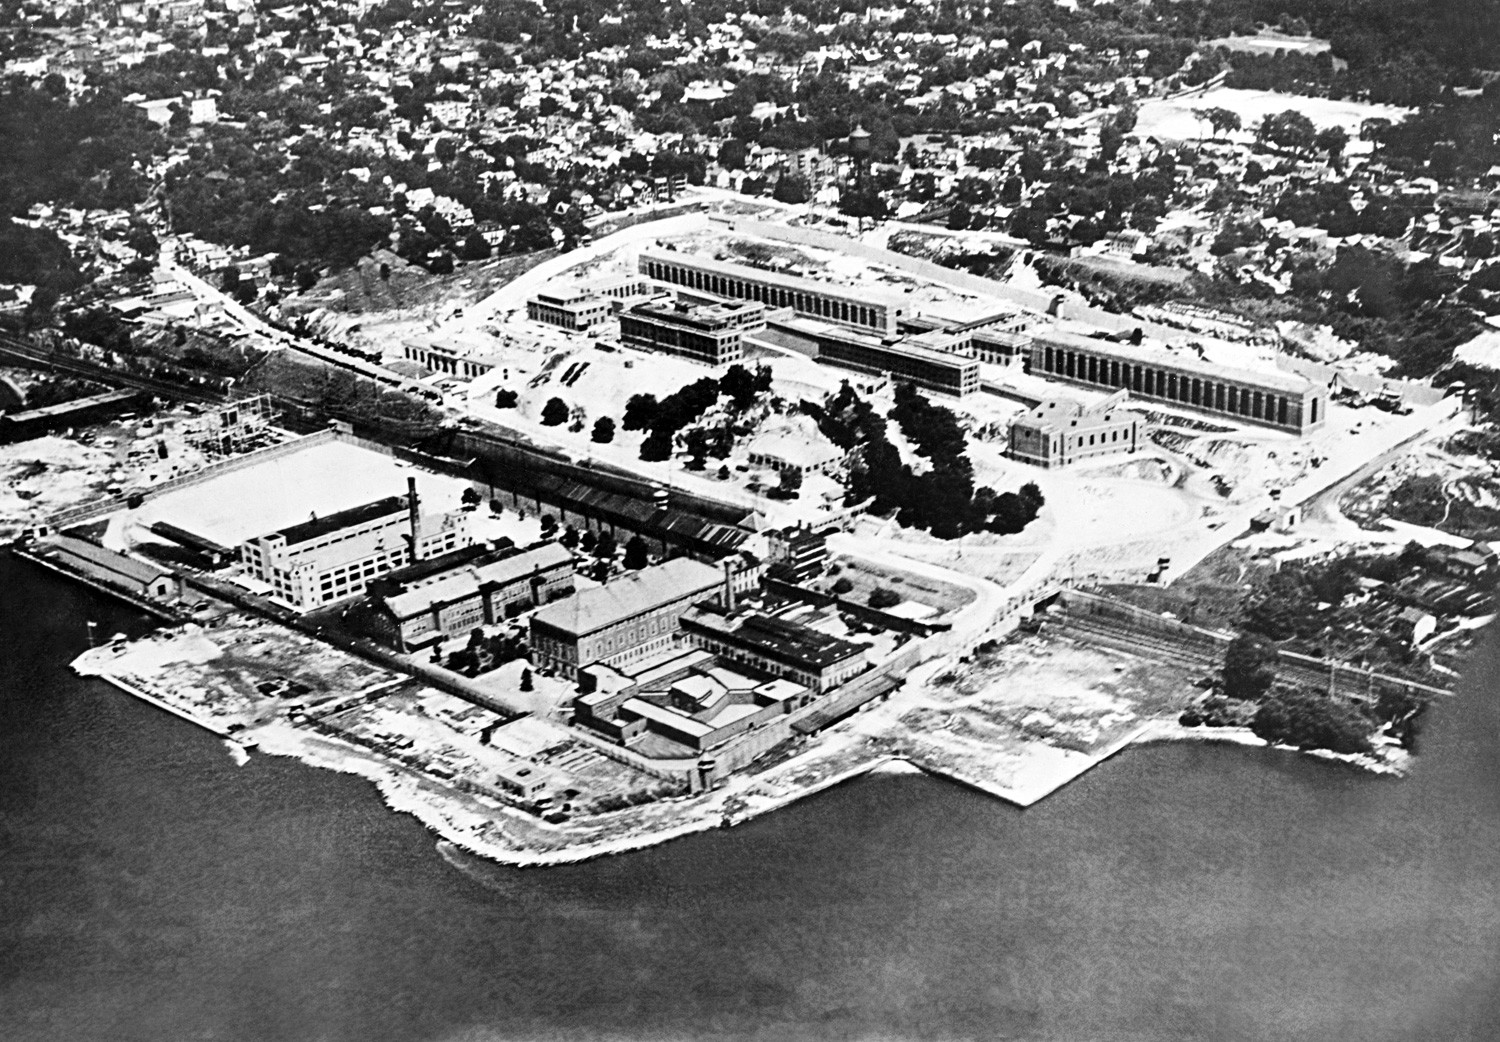 An air view of Sing Sing prison in Ossining, New York, where the Rosenbergs were executed.